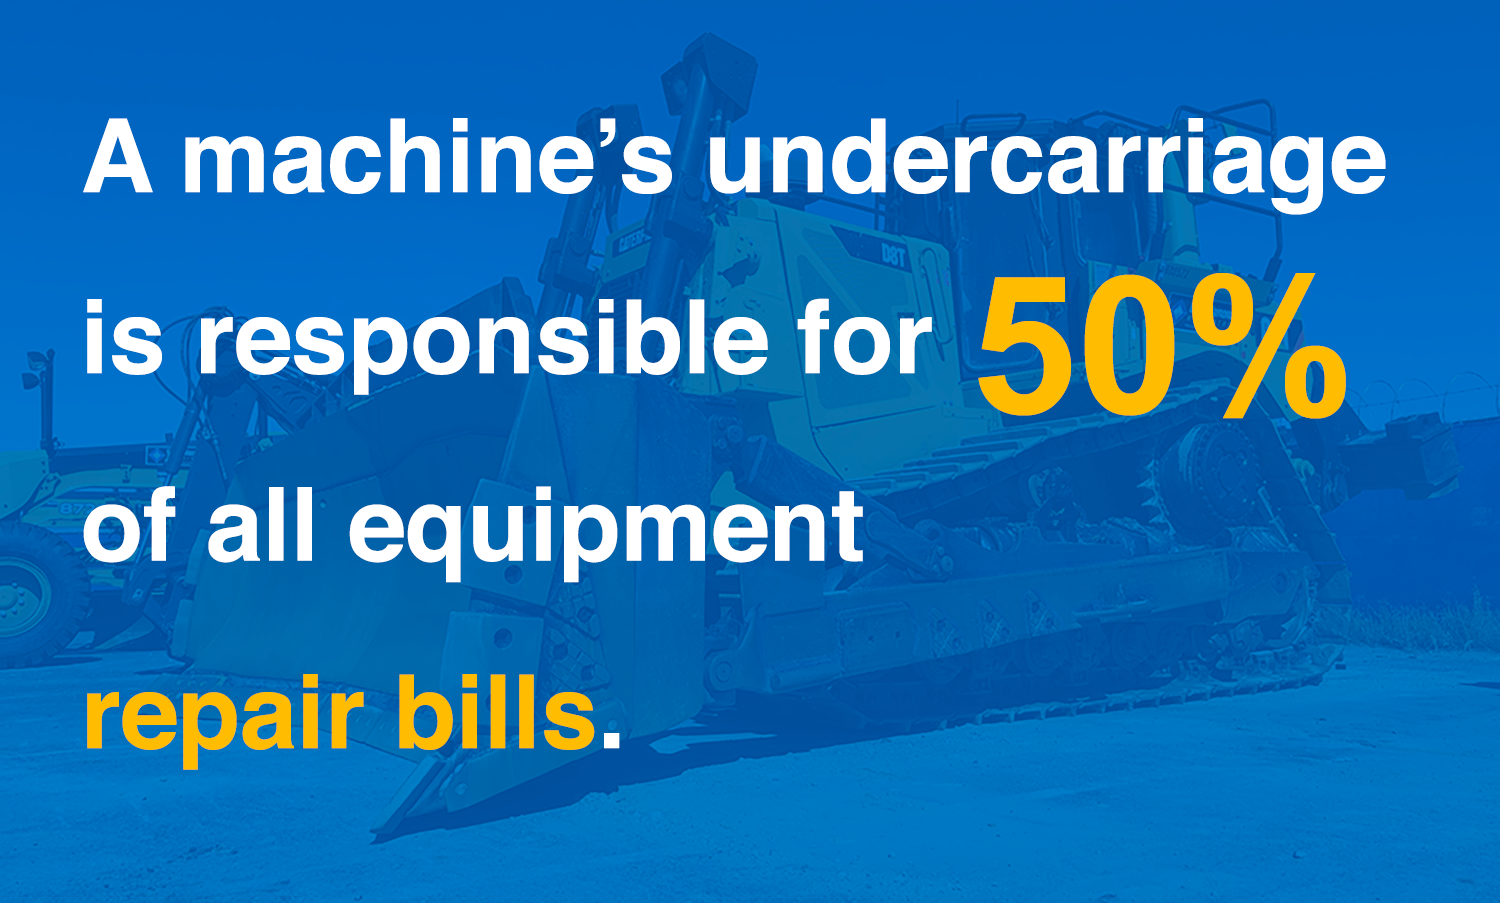 A machine's undercarriage is responsible for 50 percent of all equipment repair bills